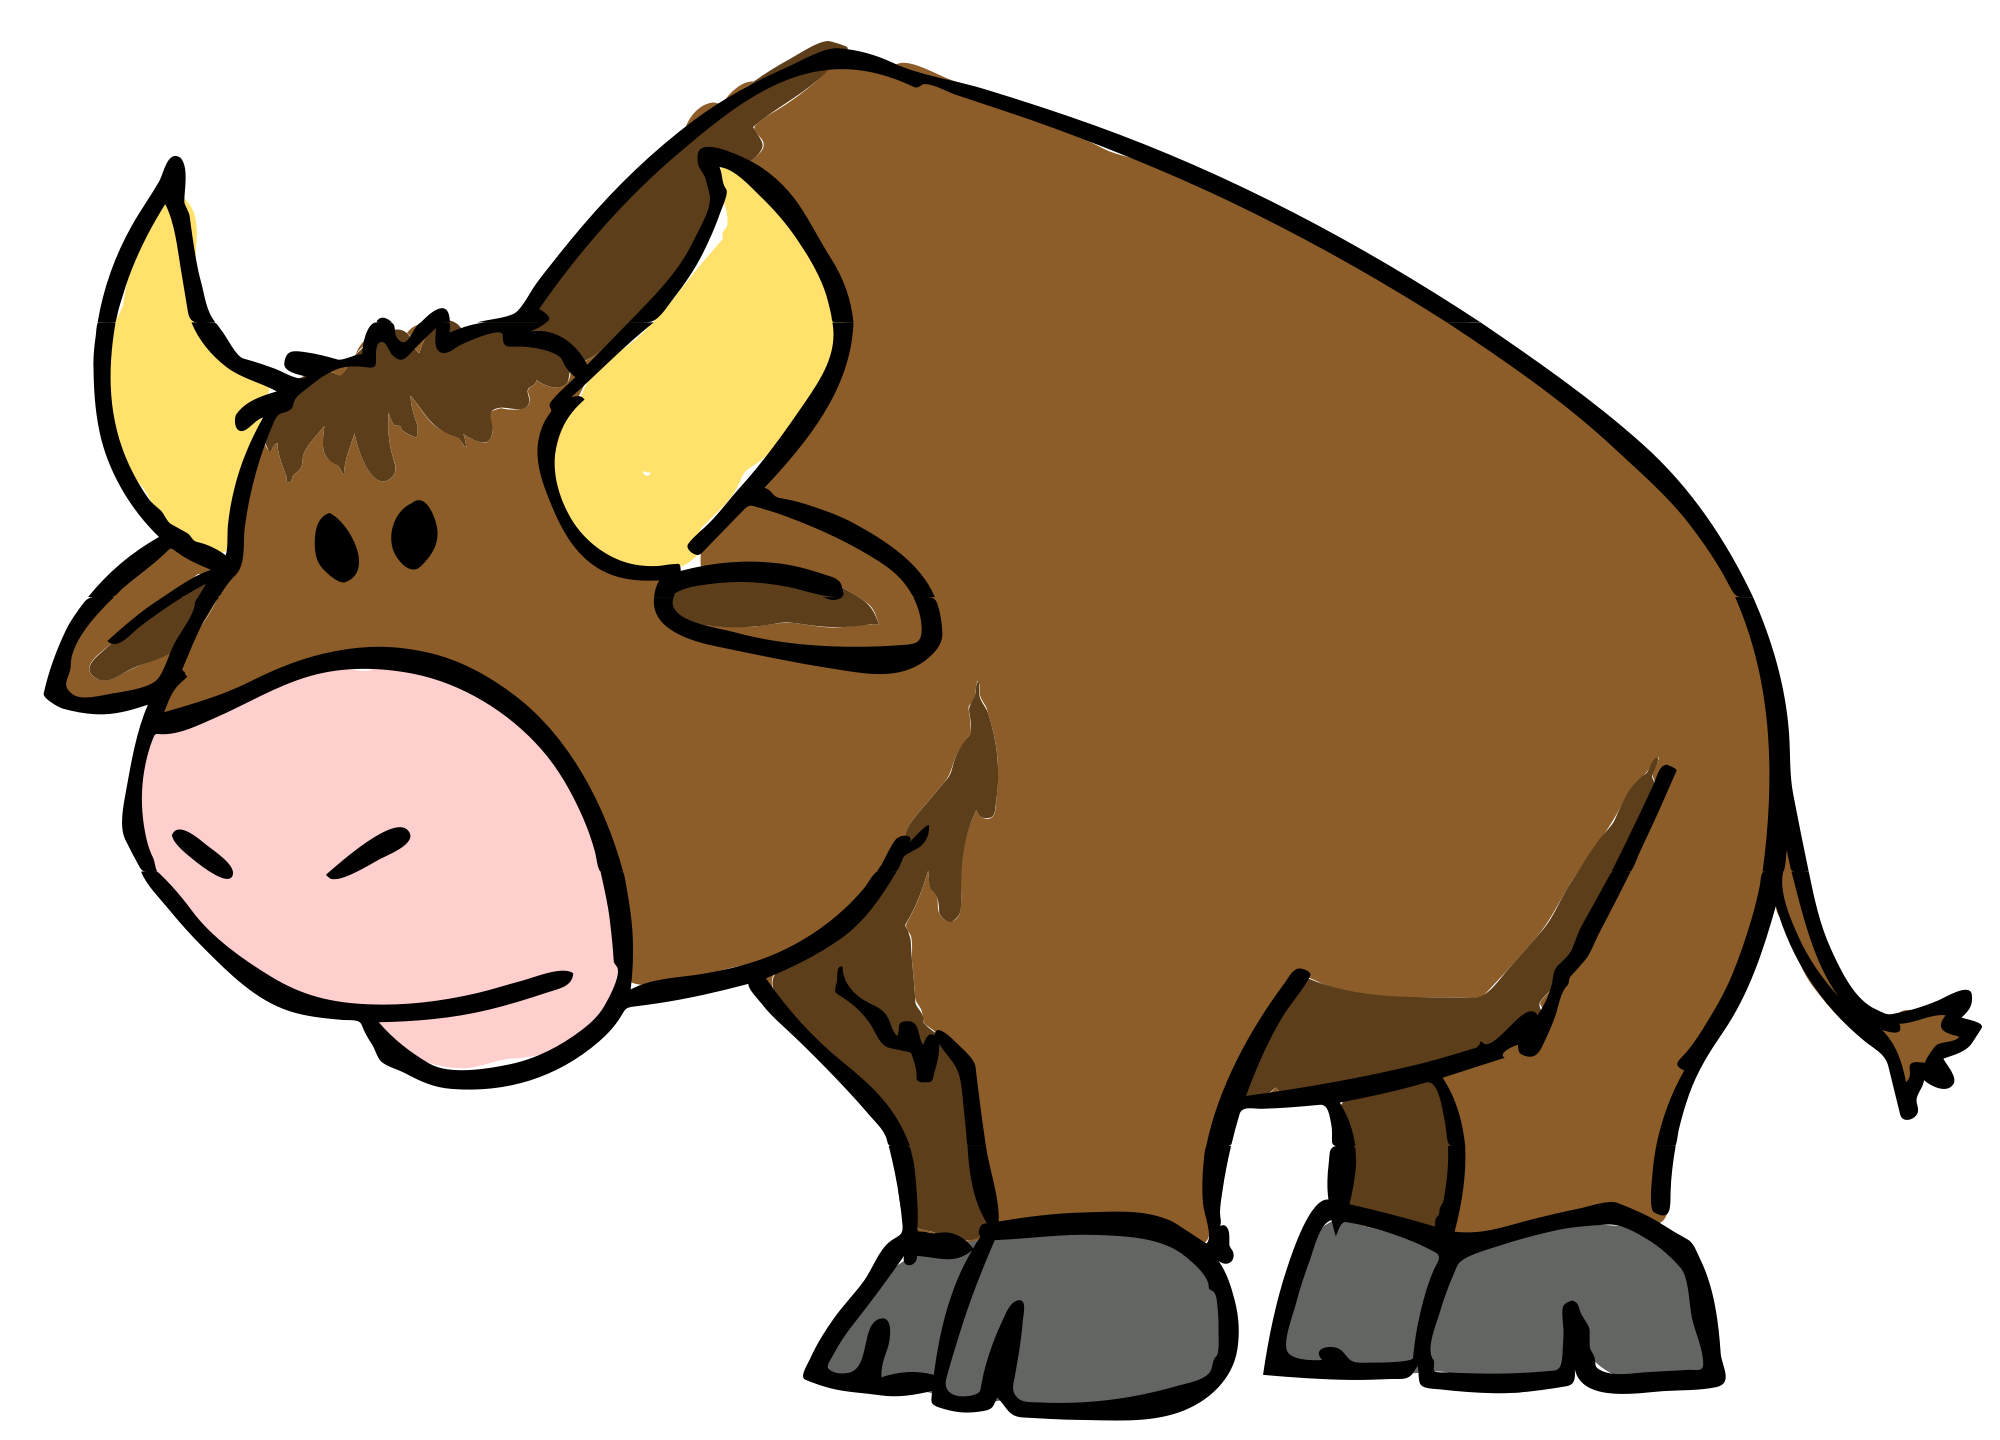 Yak clipart bison. Buffalo cartoon drawing at